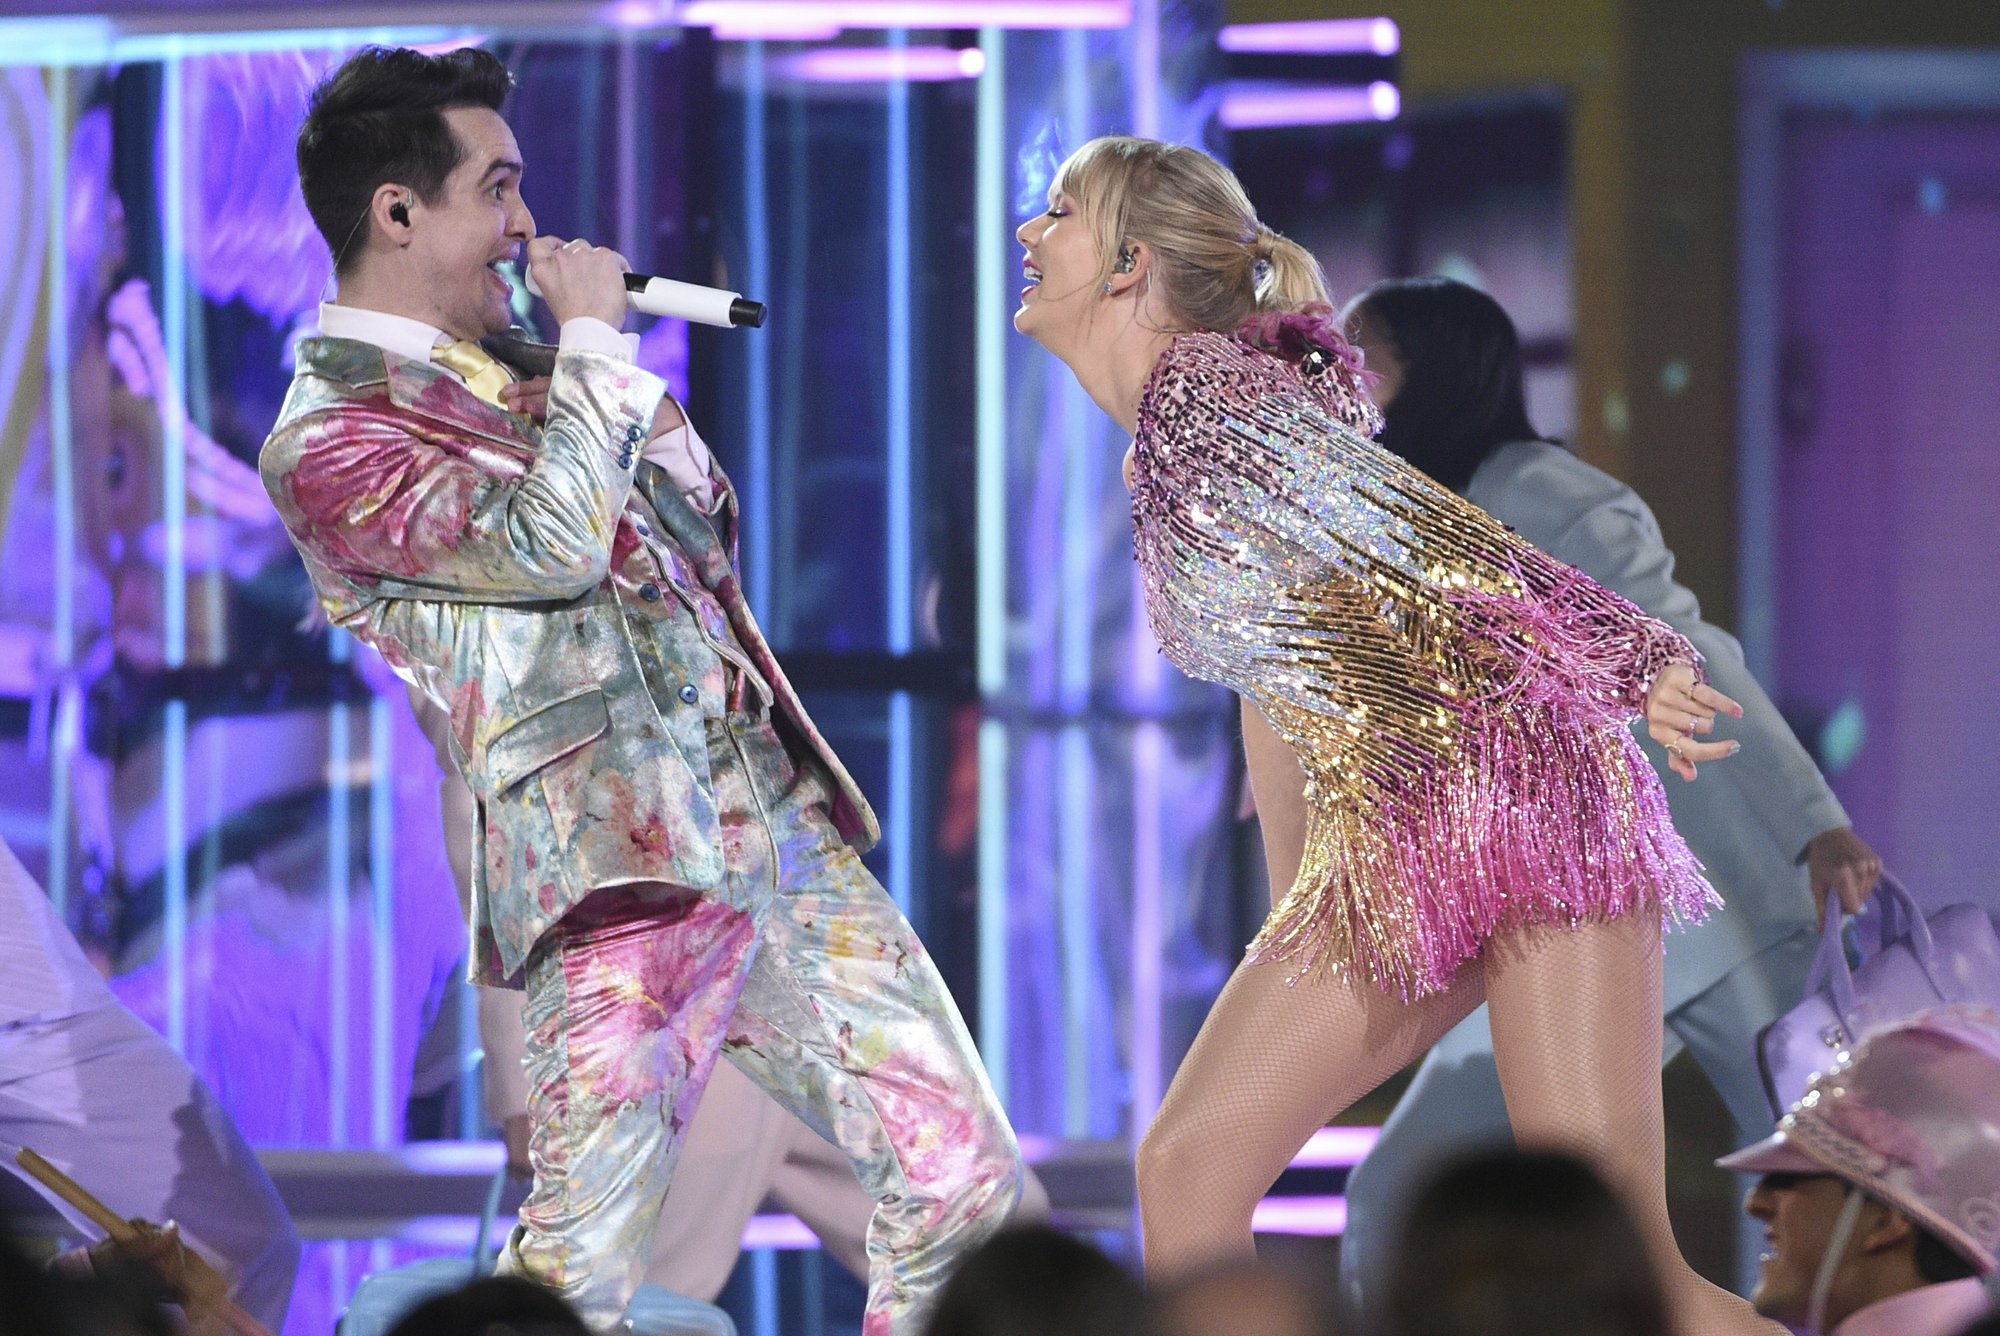 brendon Uris reacts to taylor swift me son at billboard music awards